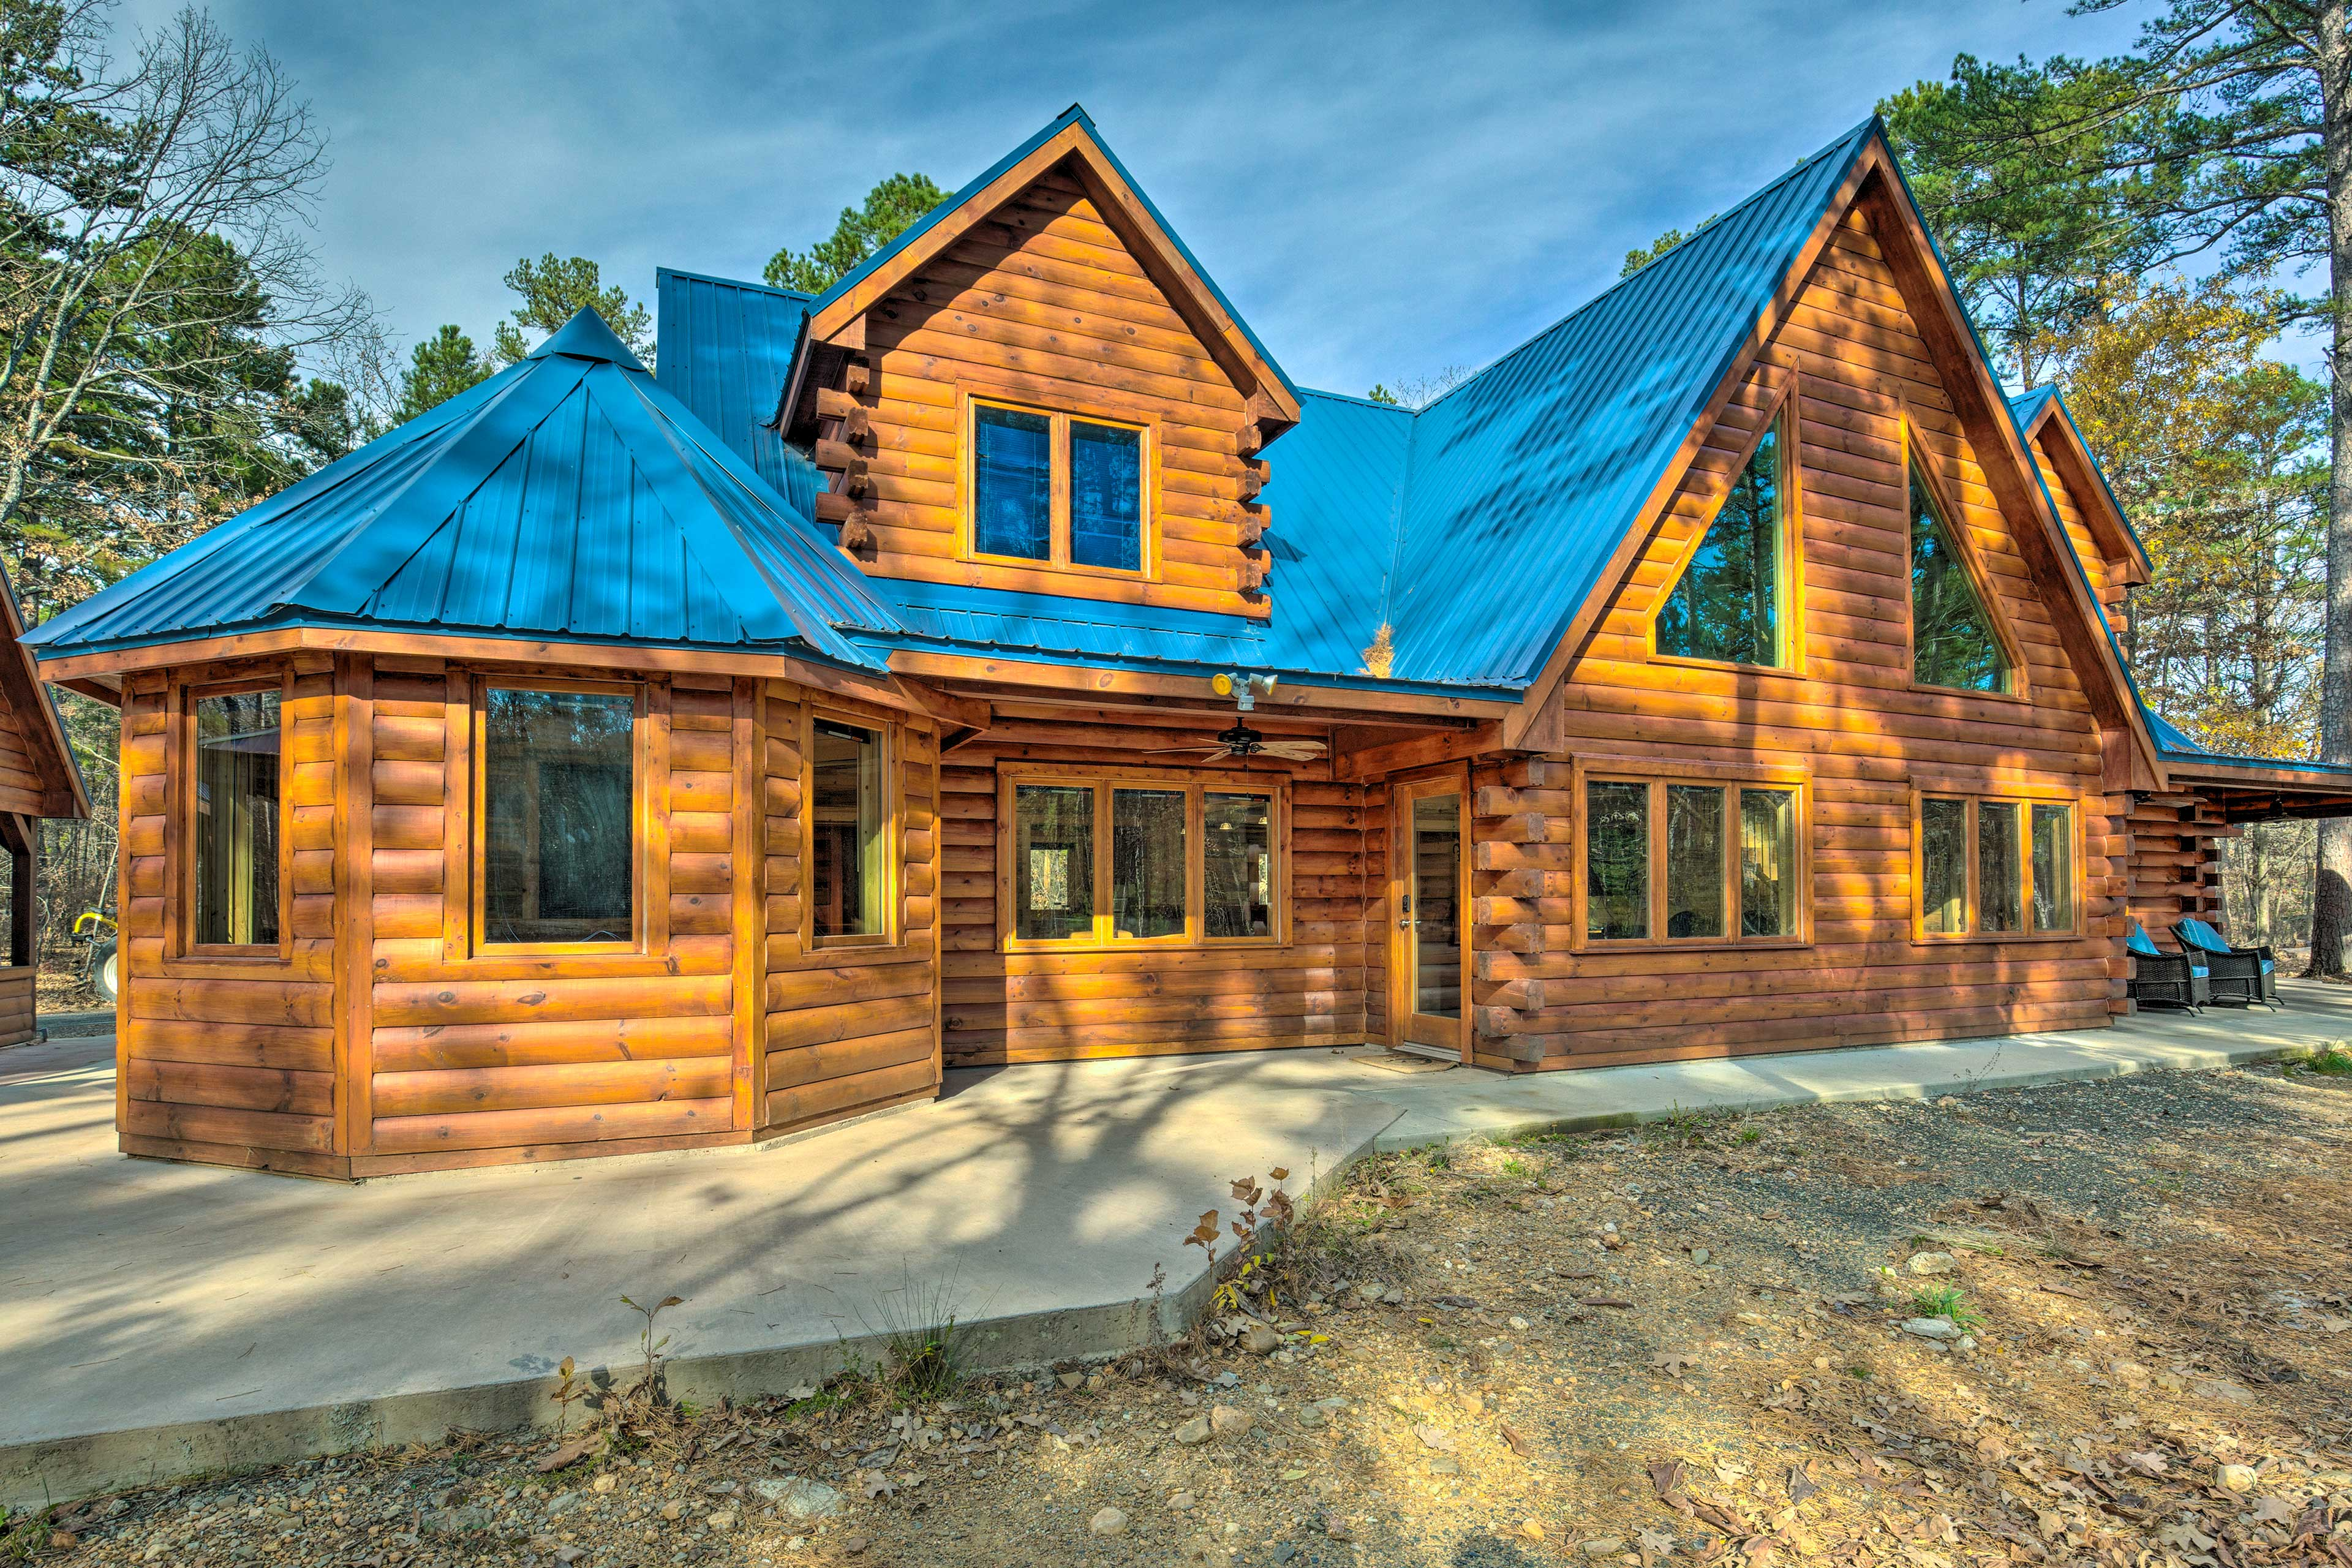 'Blue Bass Lodge' features 6 bedrooms, 3 bathrooms, and a hot tub.